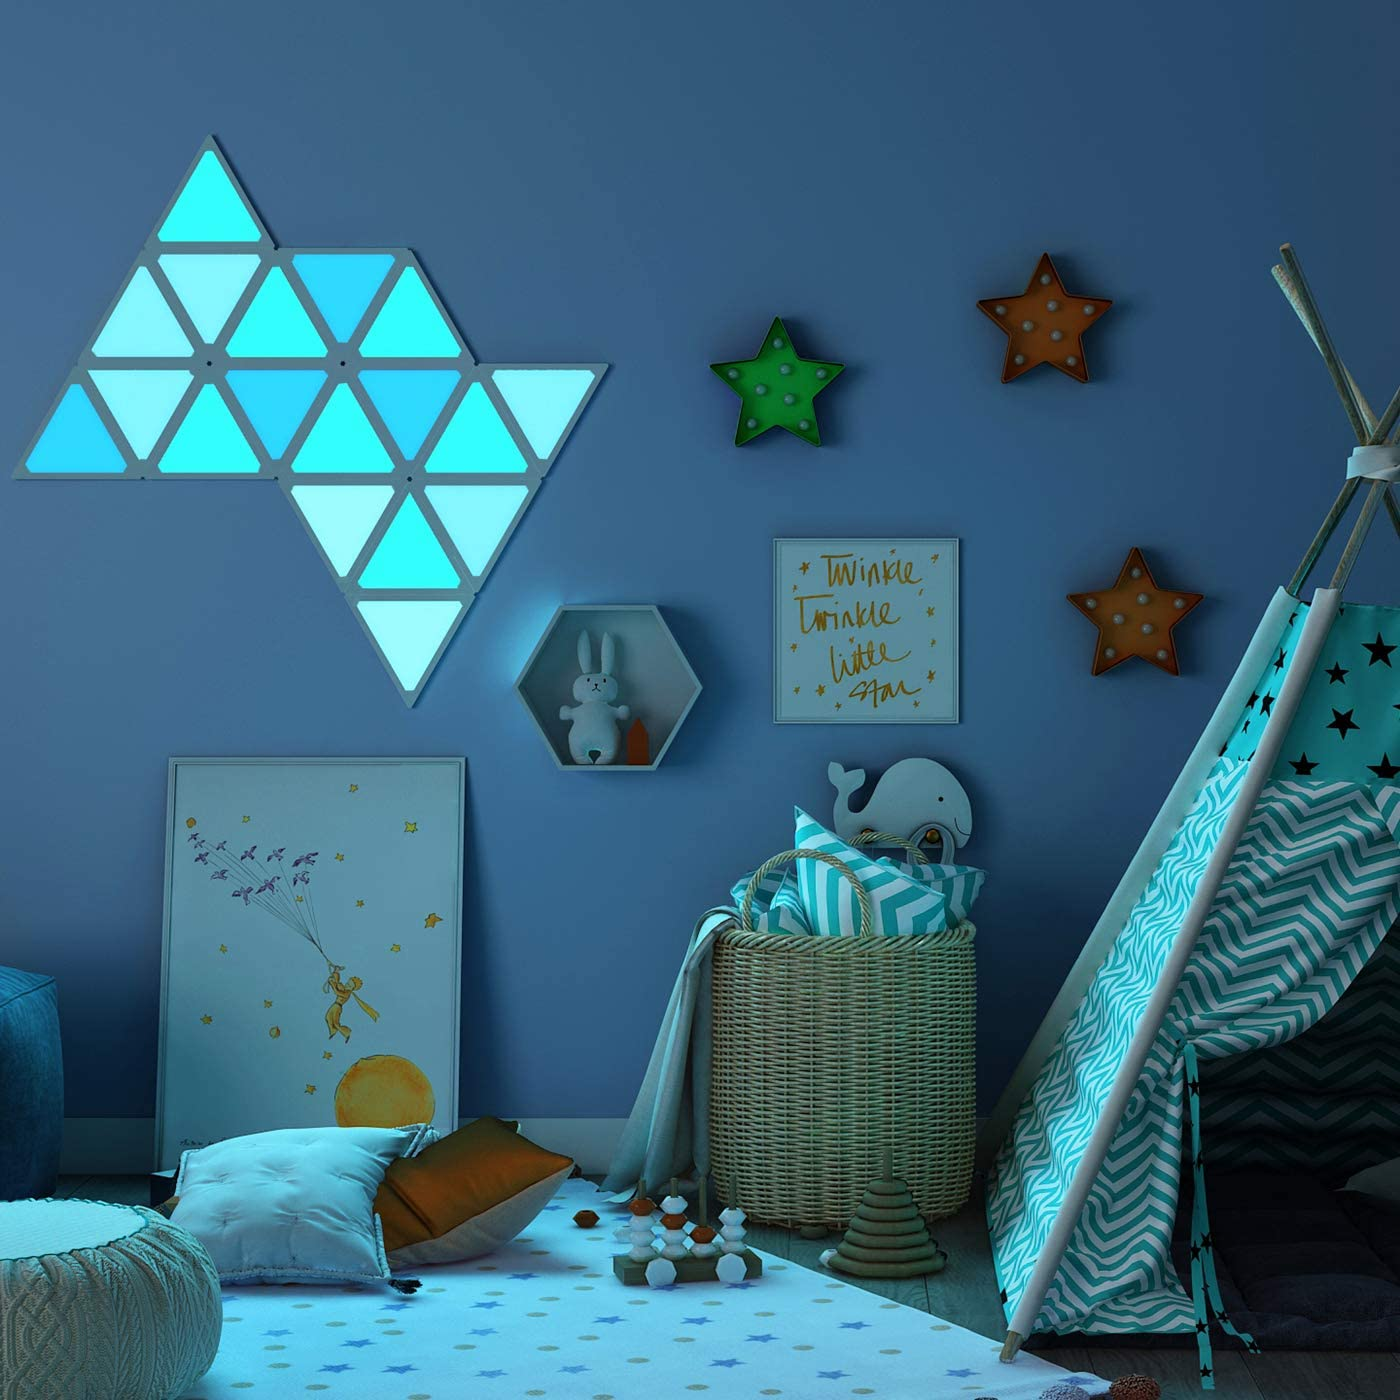 Triangle Wall Light Smart LED Modular Light Panels Touch-Sensitive Multicolor RGBW Night Light for Room Gaming Room Party Decor